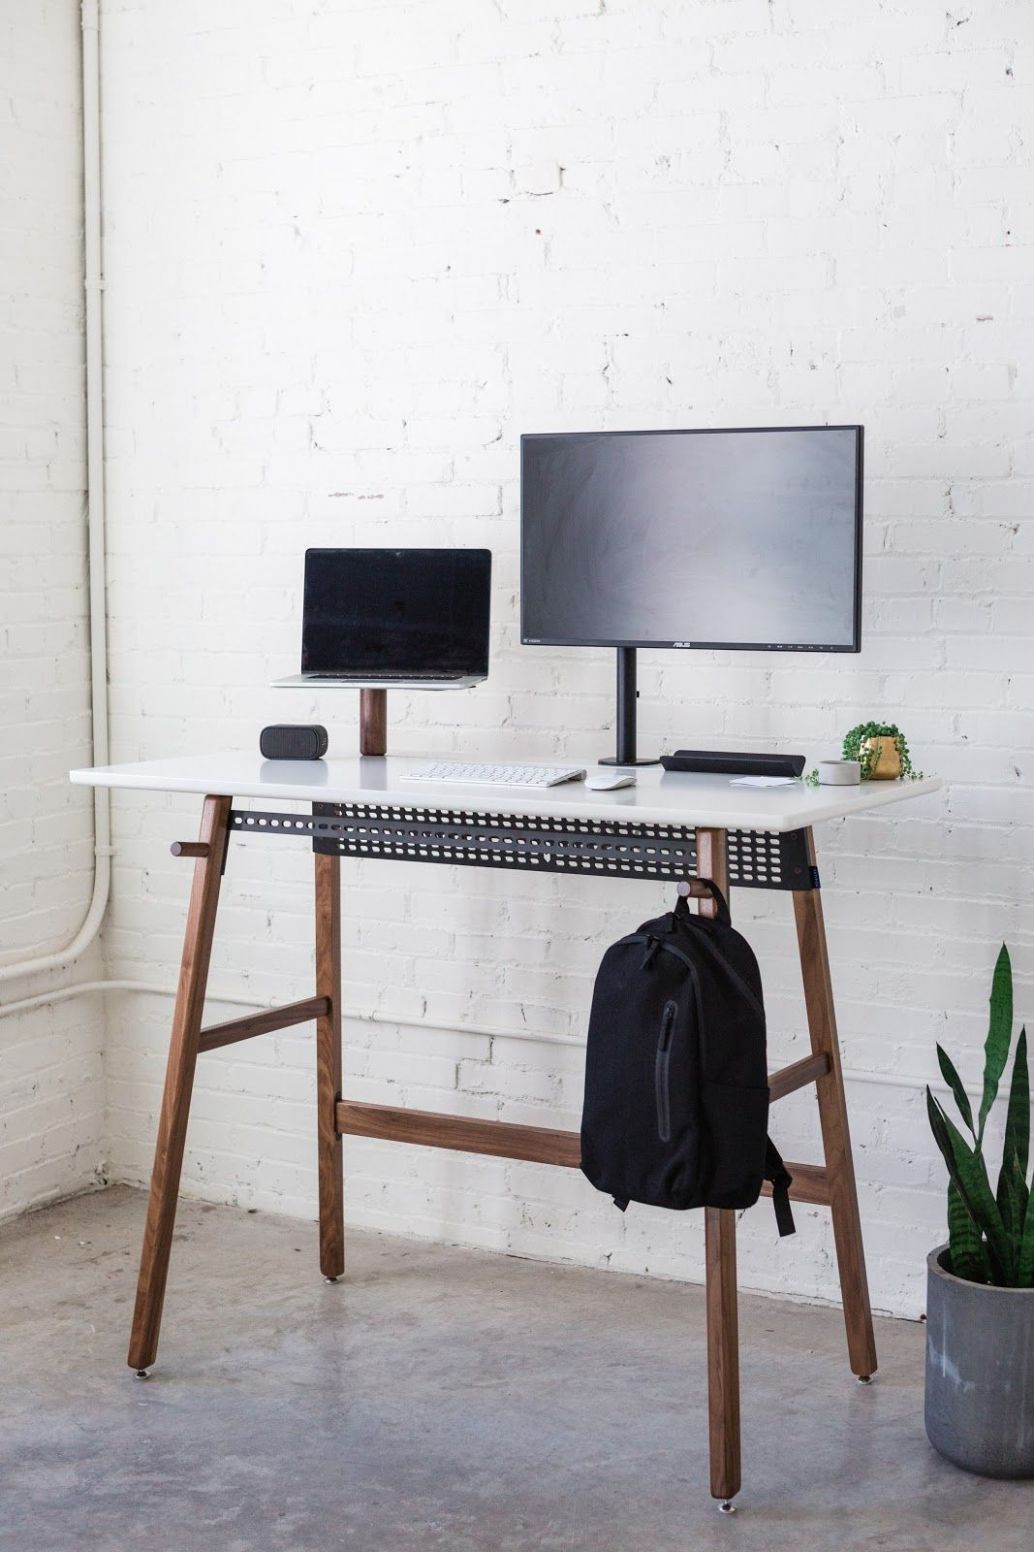 Standing desk 8 (With images) | Standing desk, White standing ..